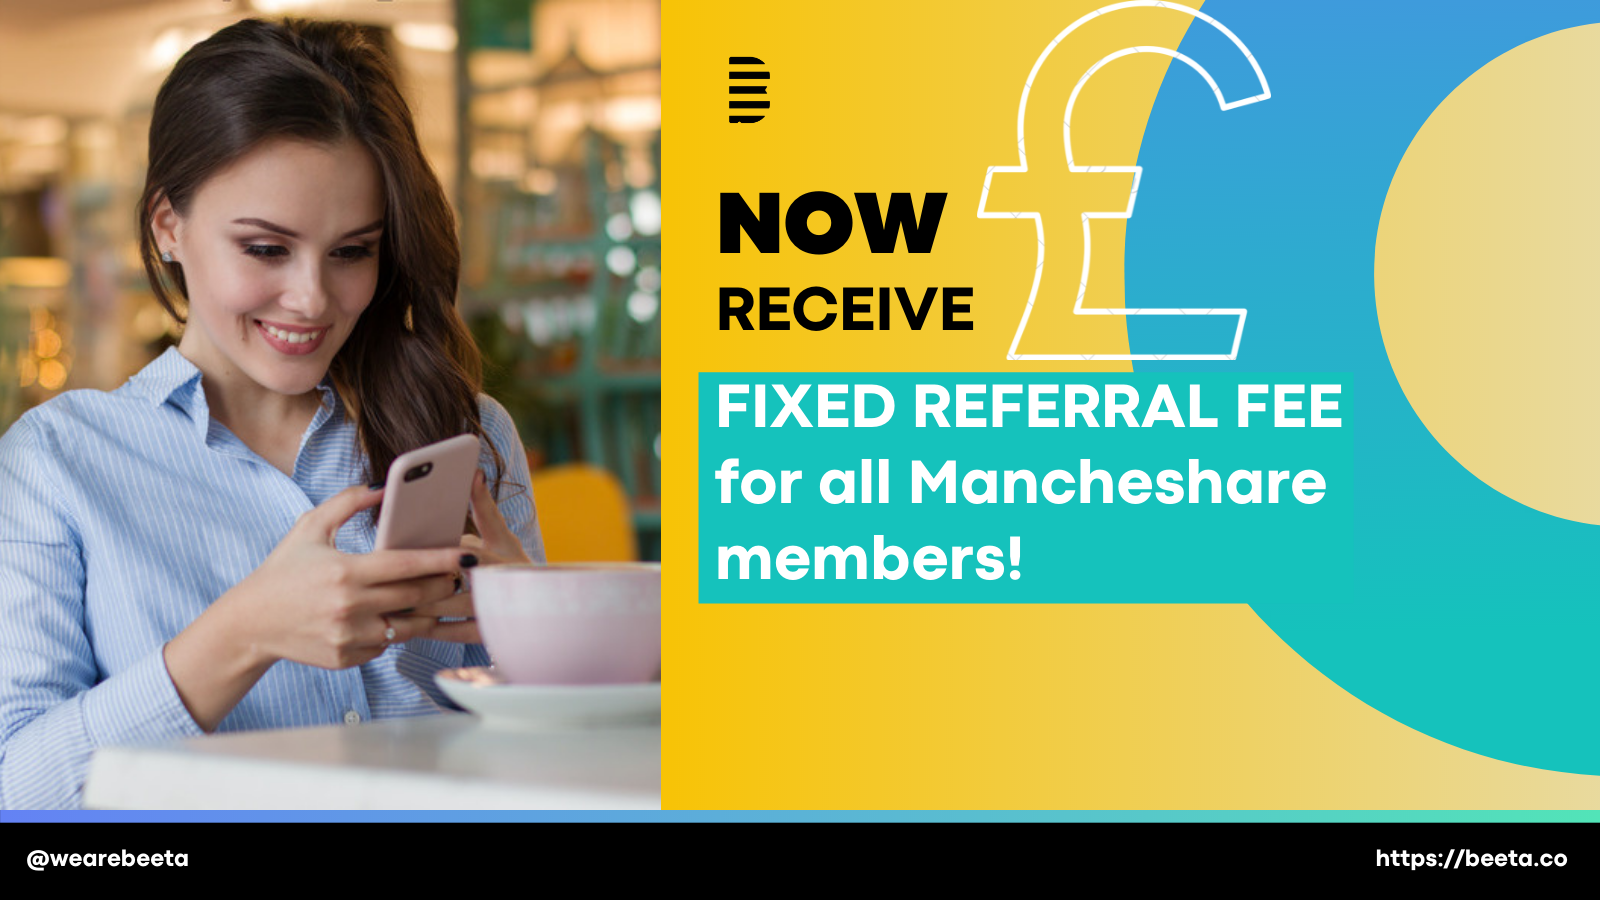 Referral fee for all Mancheshare members!